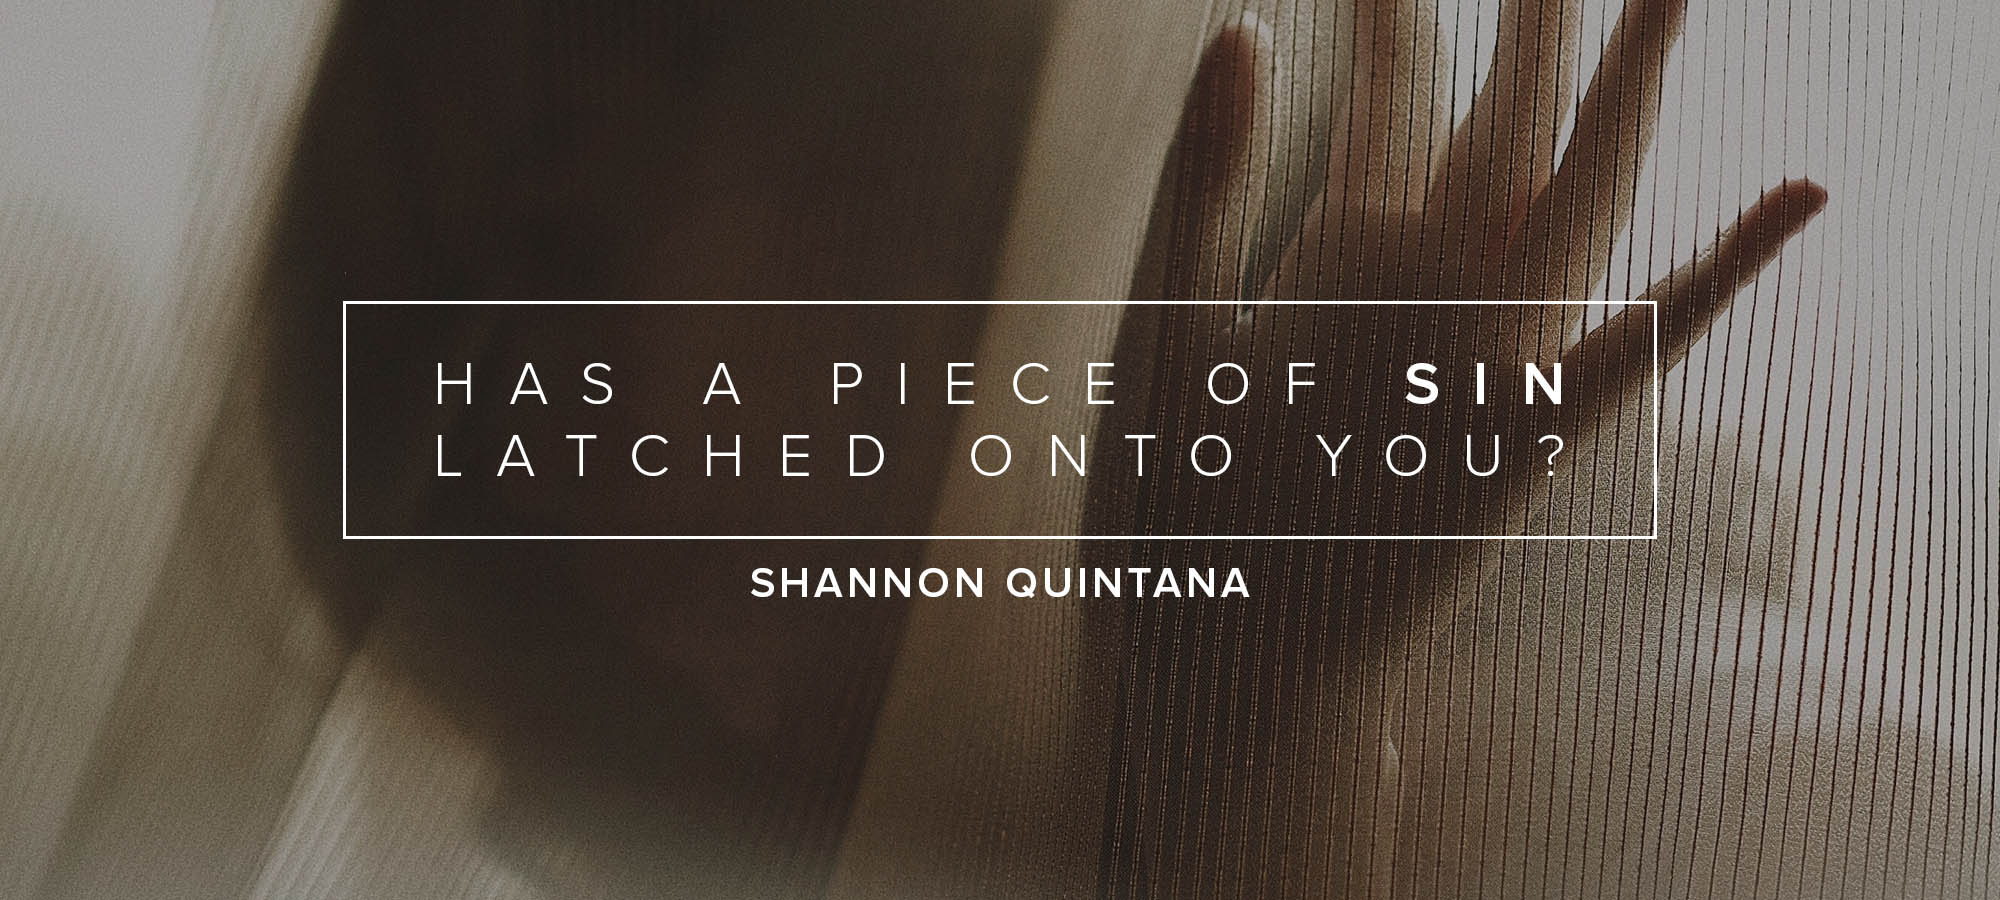 Shannon-Quintana-Has-a-Piece-of-Sin-Latched-Onto-You-copy.jpg